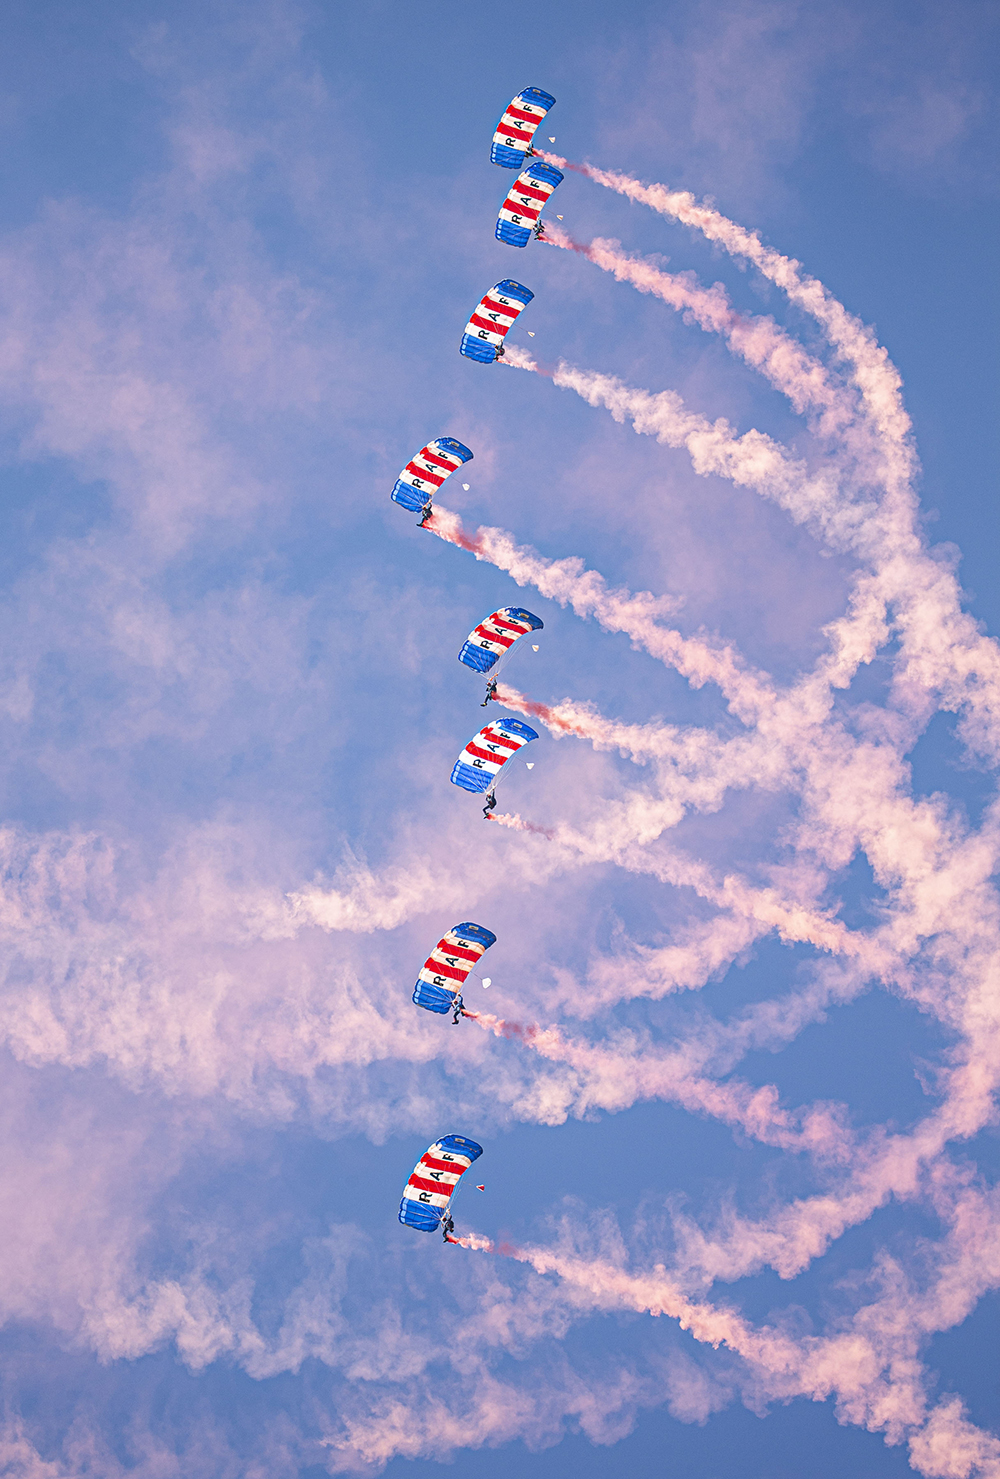 The RAF Falcons conducting display specific training in California on their last training Exercise